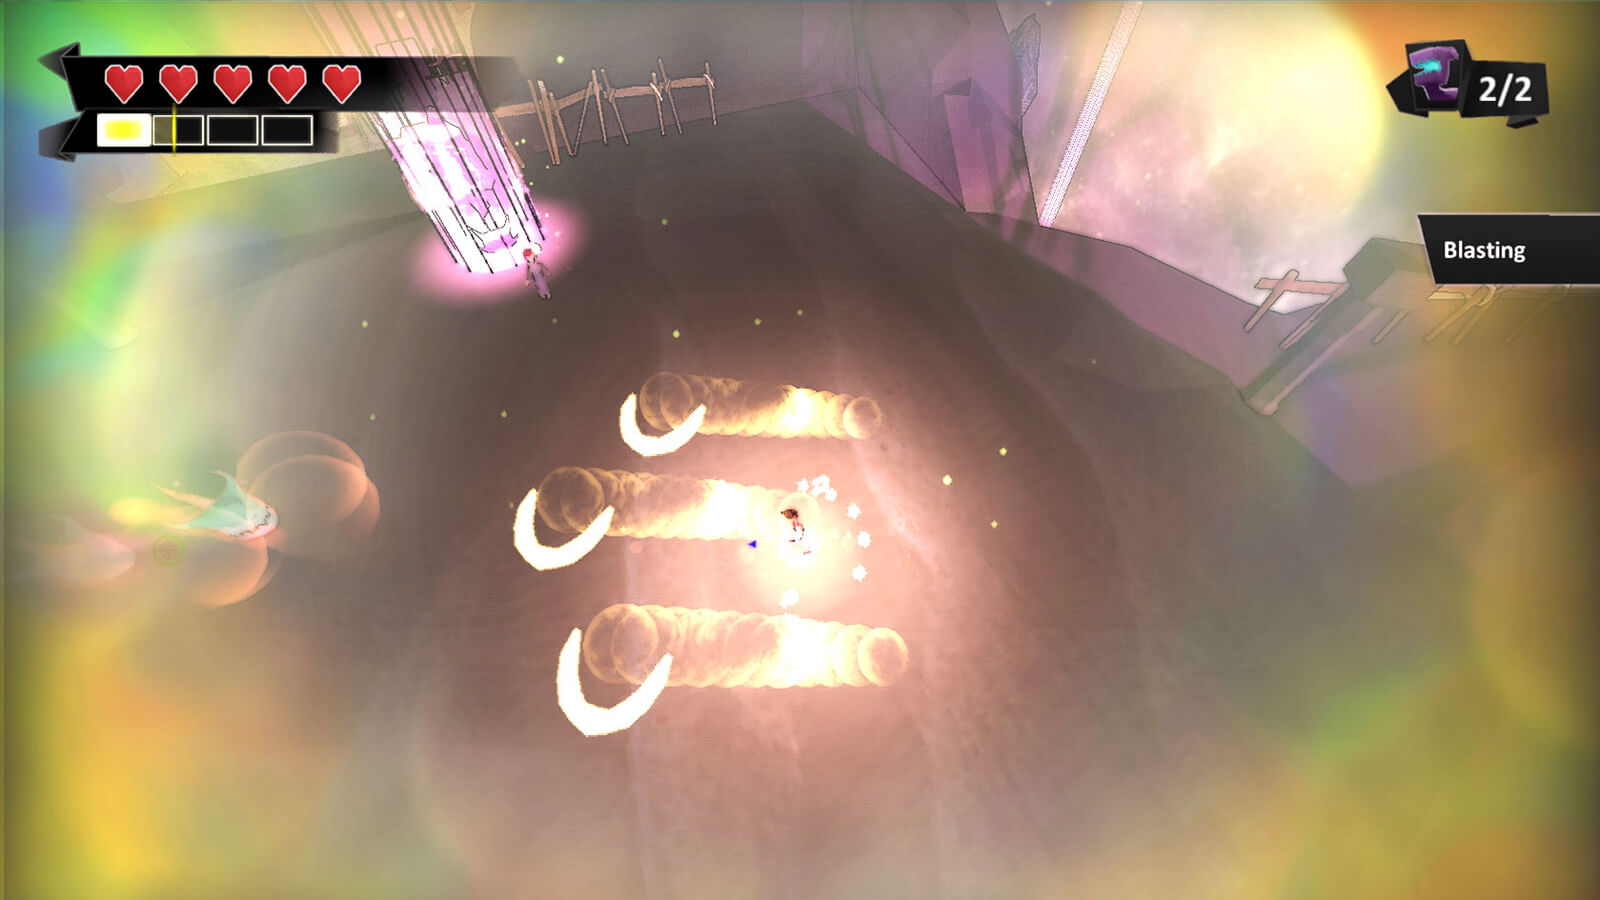 Three, bright crescent rays streak near the player's character